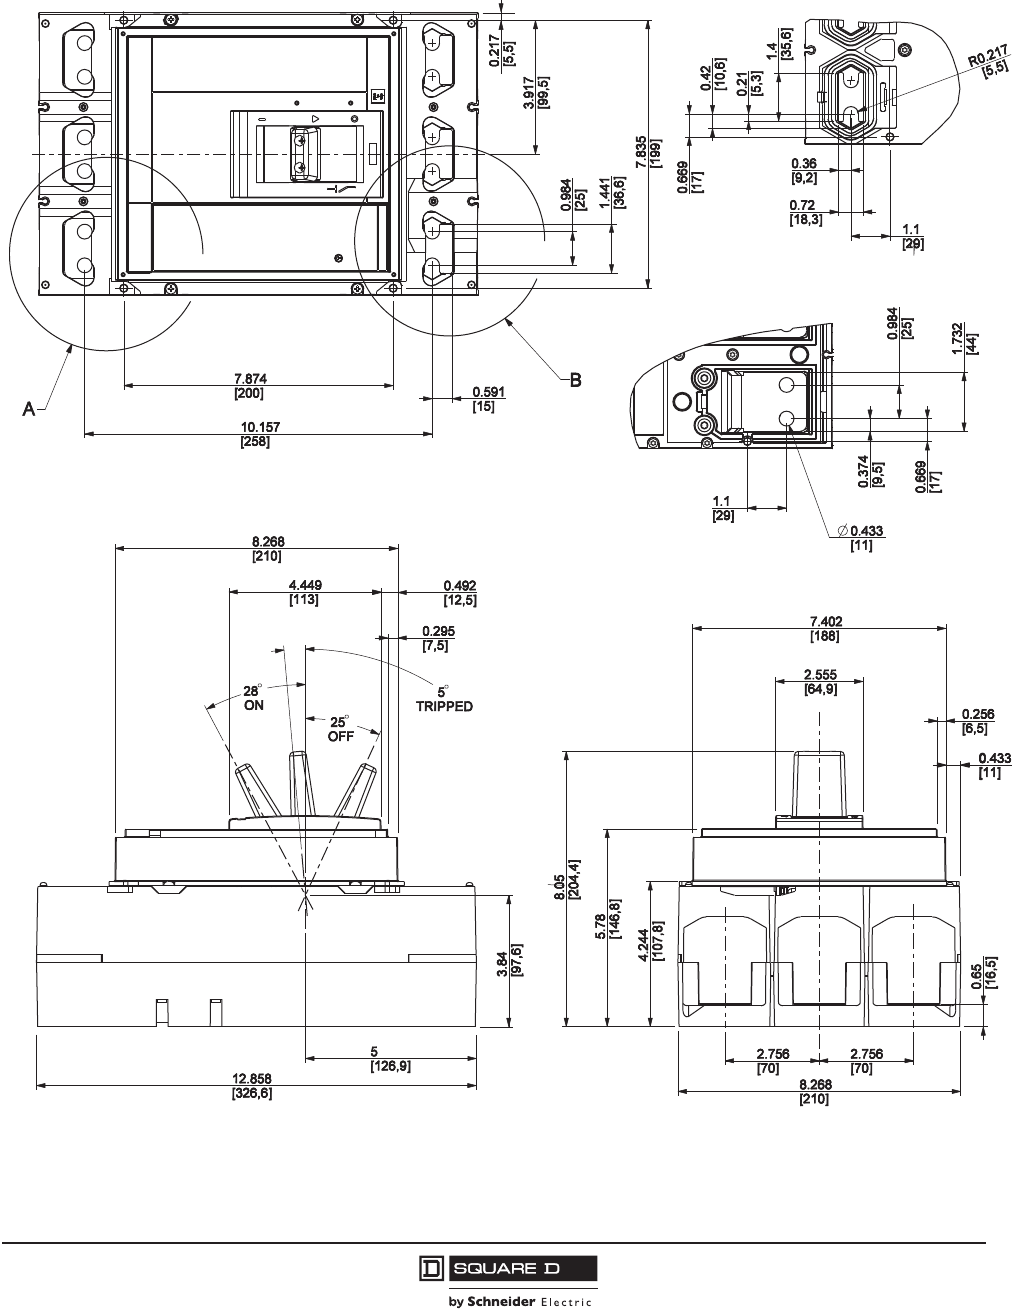 0612ct0101r0712 1000296784 Catalog Hard Wiring Zsi Oven Along With Diagram Powerpact M P And R Frame Compact Ns630bns3200 Circuit Breakers